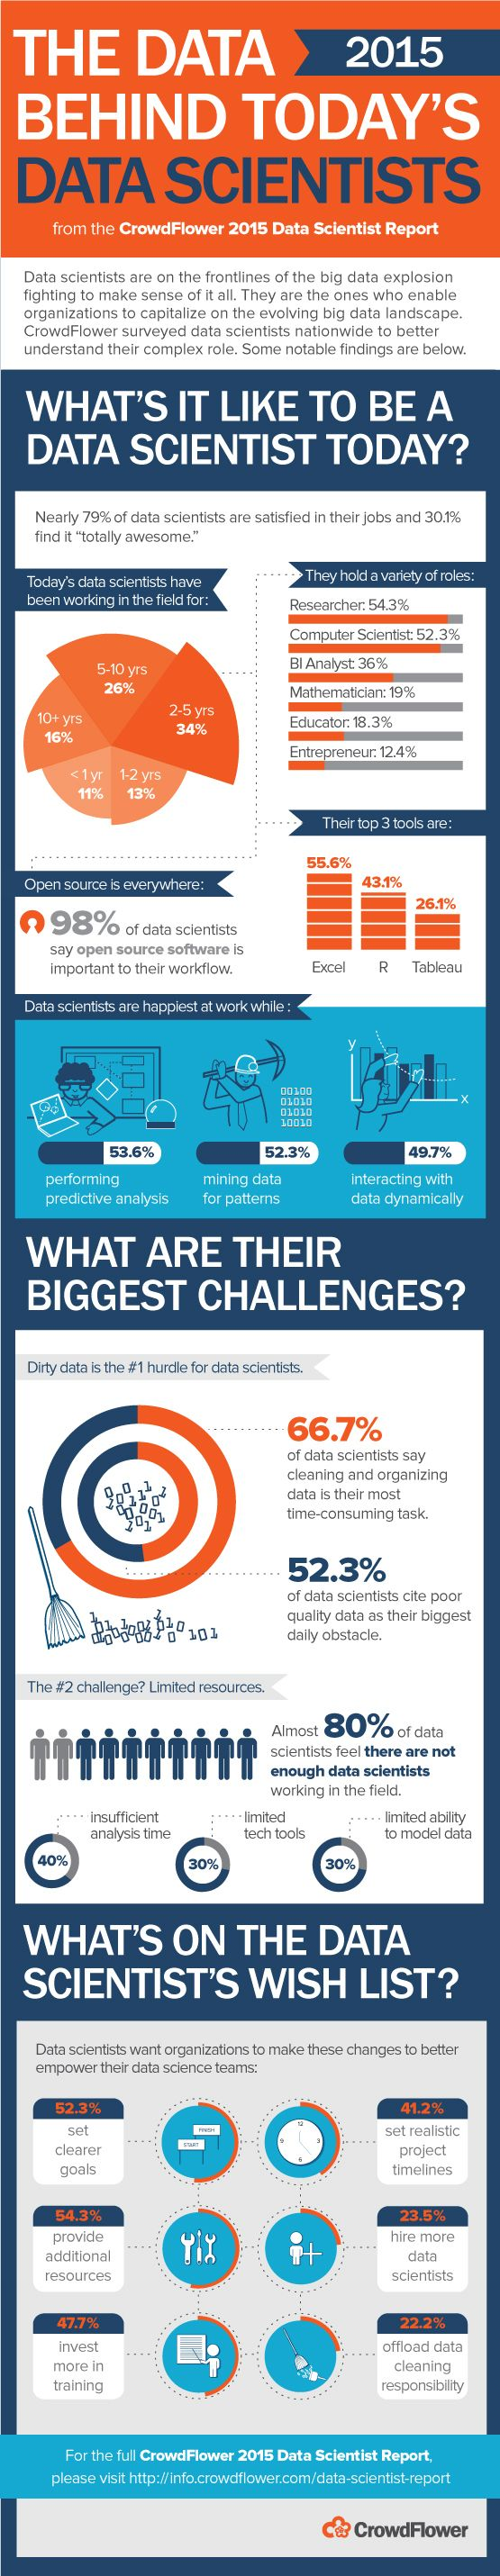 2015 Survey of Data Scientists Reveals Strategic Insights - Data Science Central